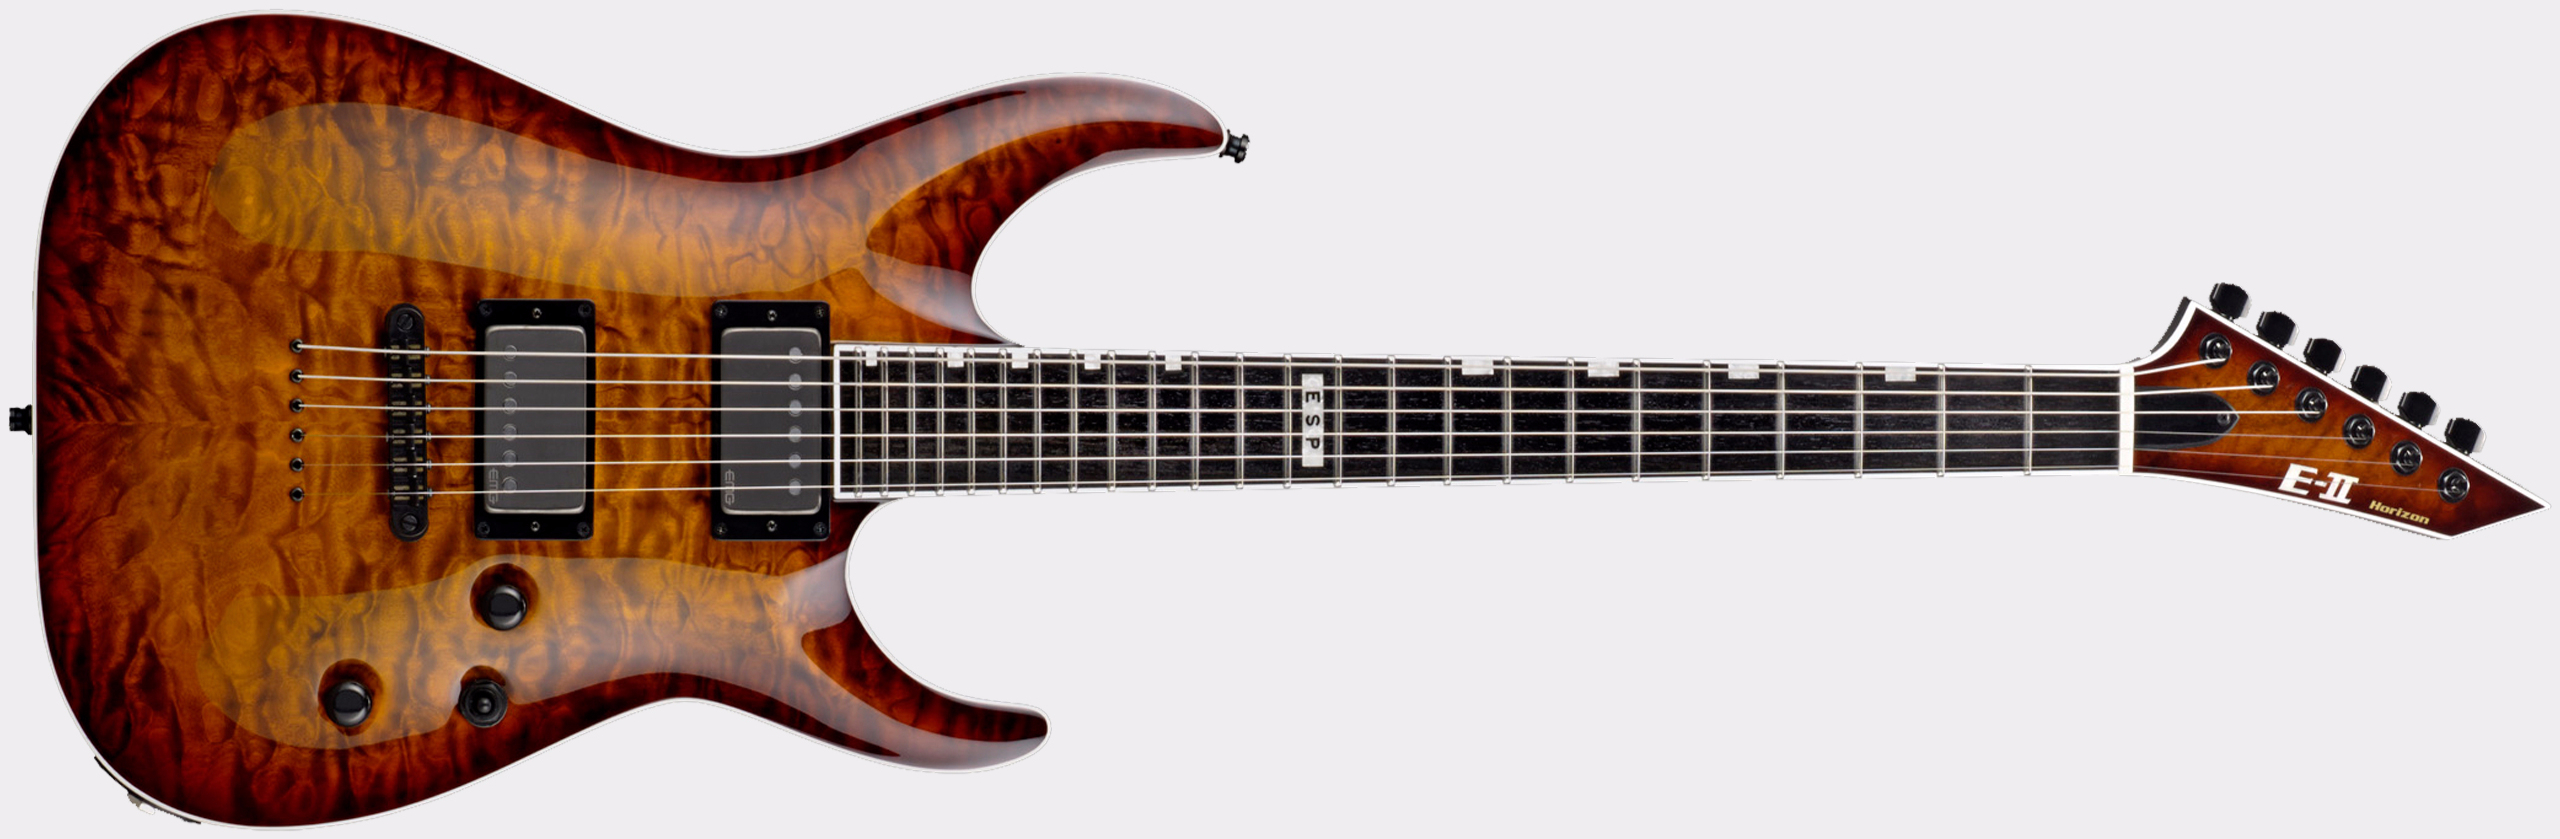 ESP E-II Horizon NT-II Tiger Eye Sunburst